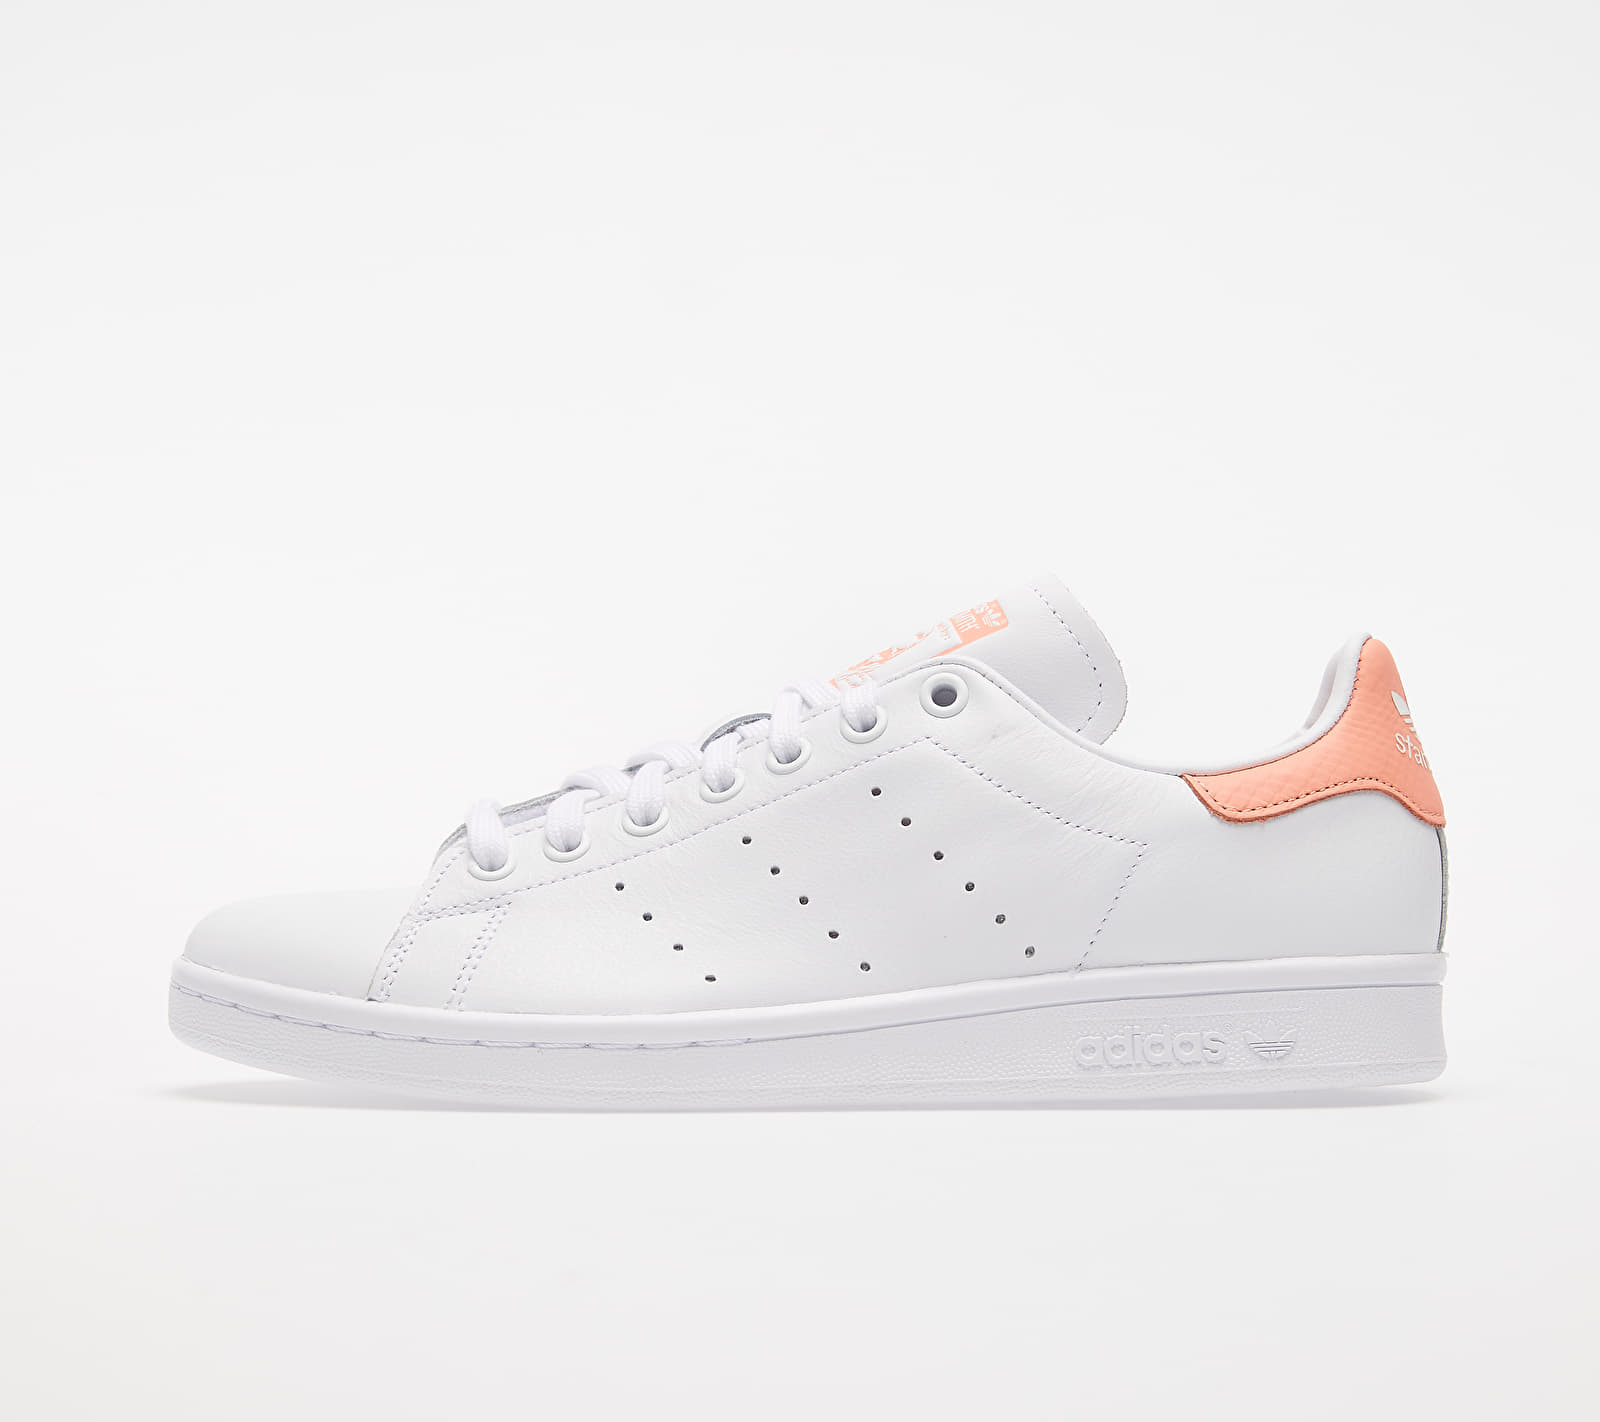 adidas Stan Smith W Ftw White/ Ftw White/ Chalk Coral EUR 37 1/3